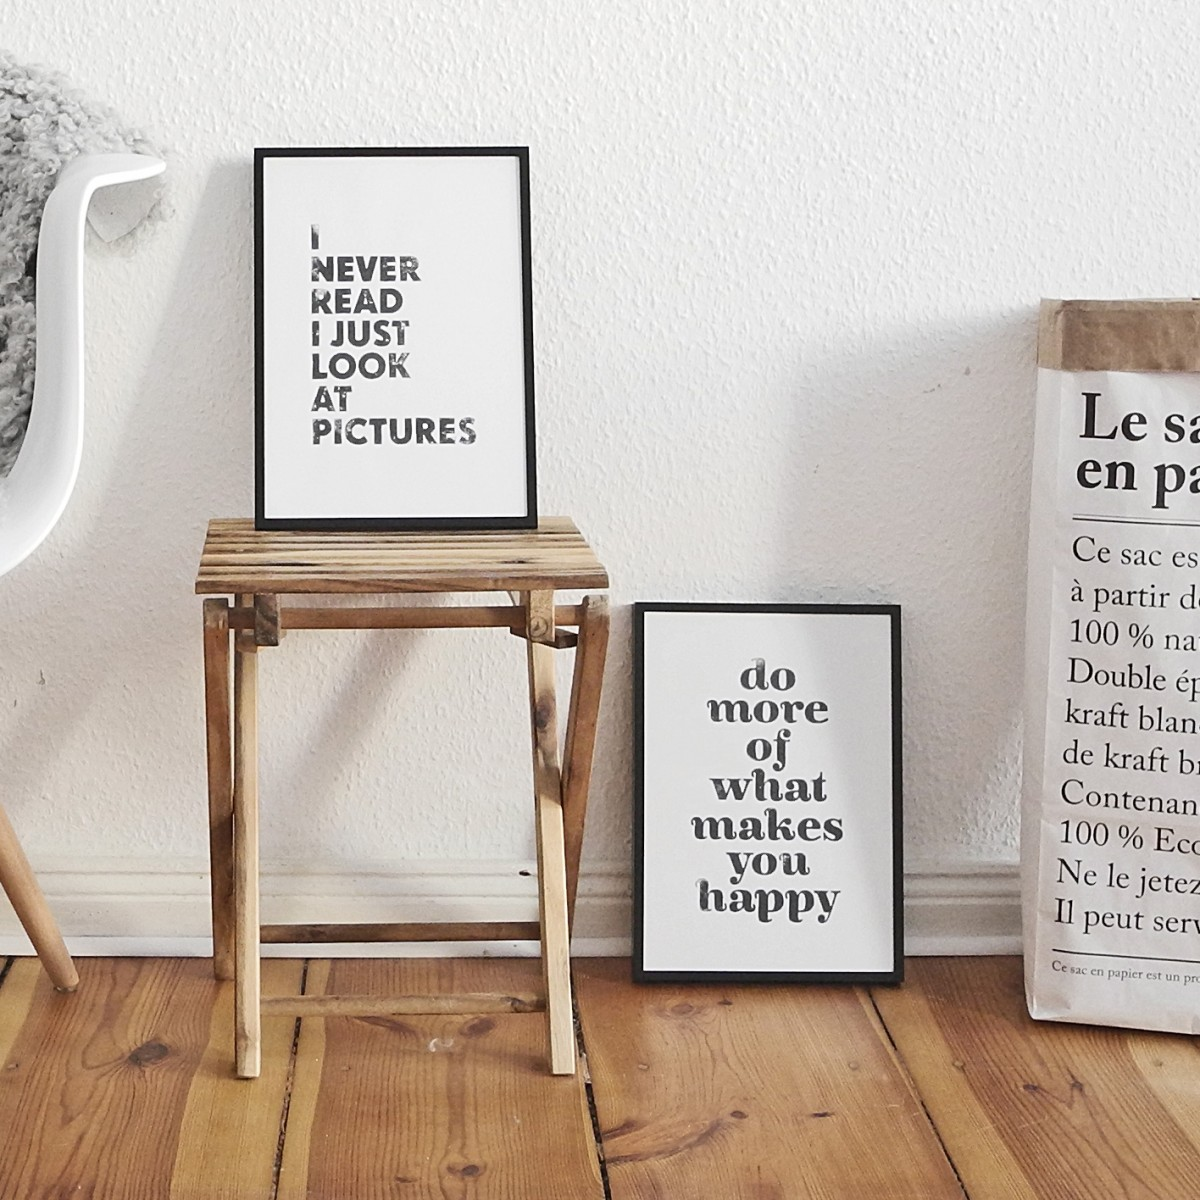 Linoldruck »do more of what makes you happy«, ungerahmt (DIN A4), Poster, Print, Typografie, Design